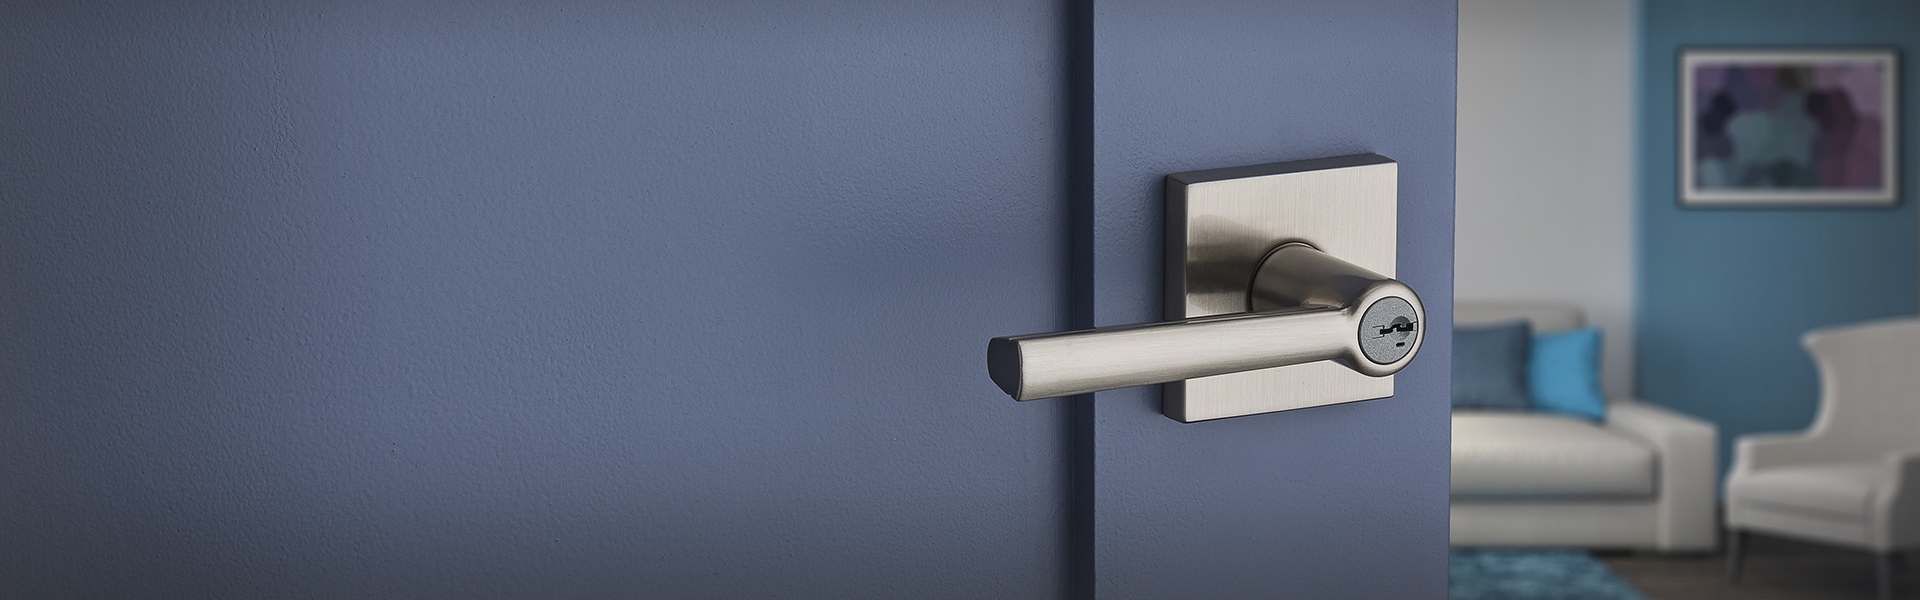 Contemporary lever on blue living room door.